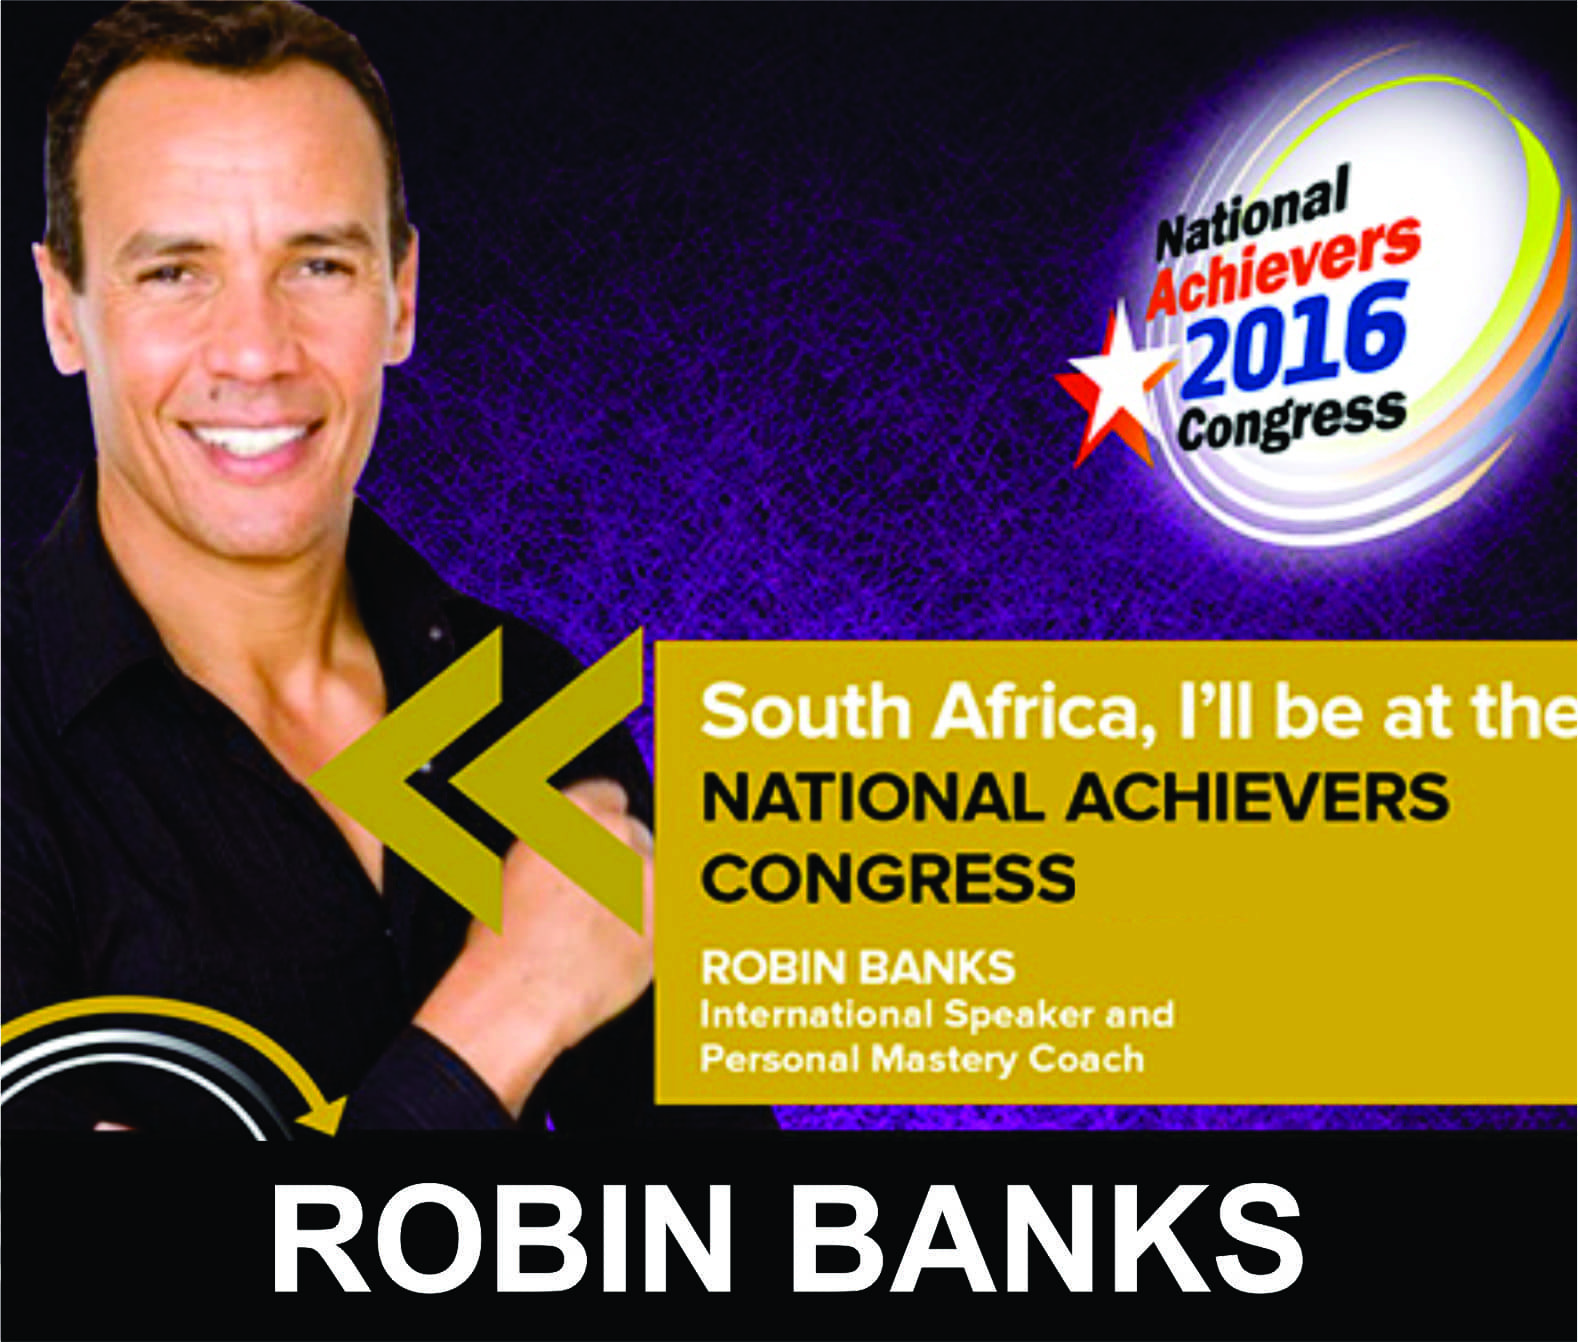 Robin Banks - Personal Mastery Coach and Speaker